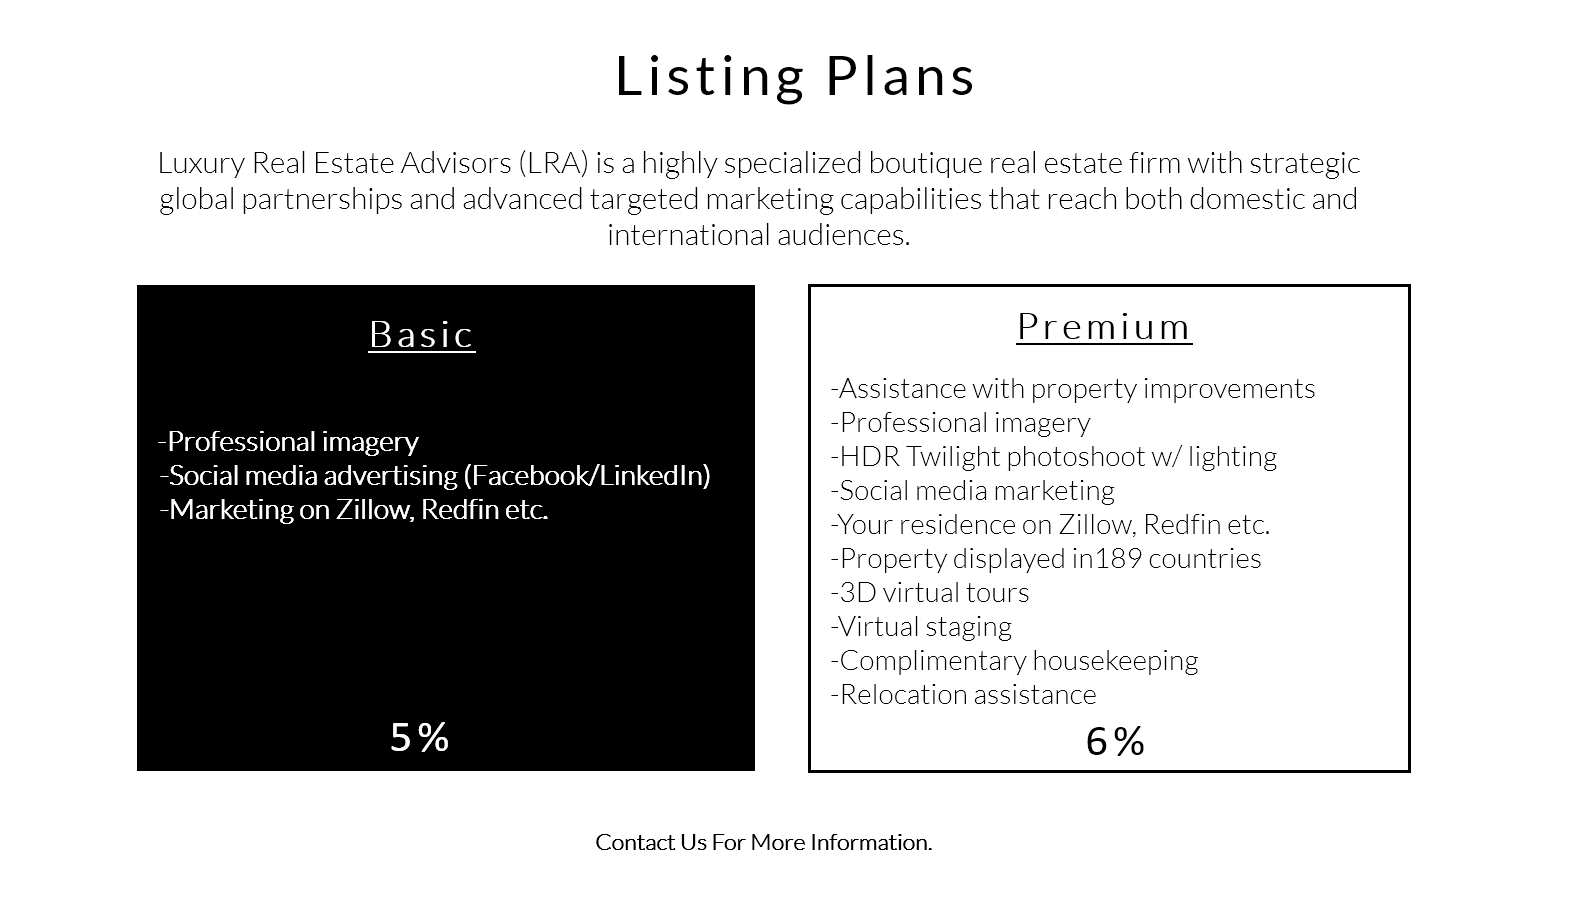 Luxury Real Estate Advisors Listing Plans